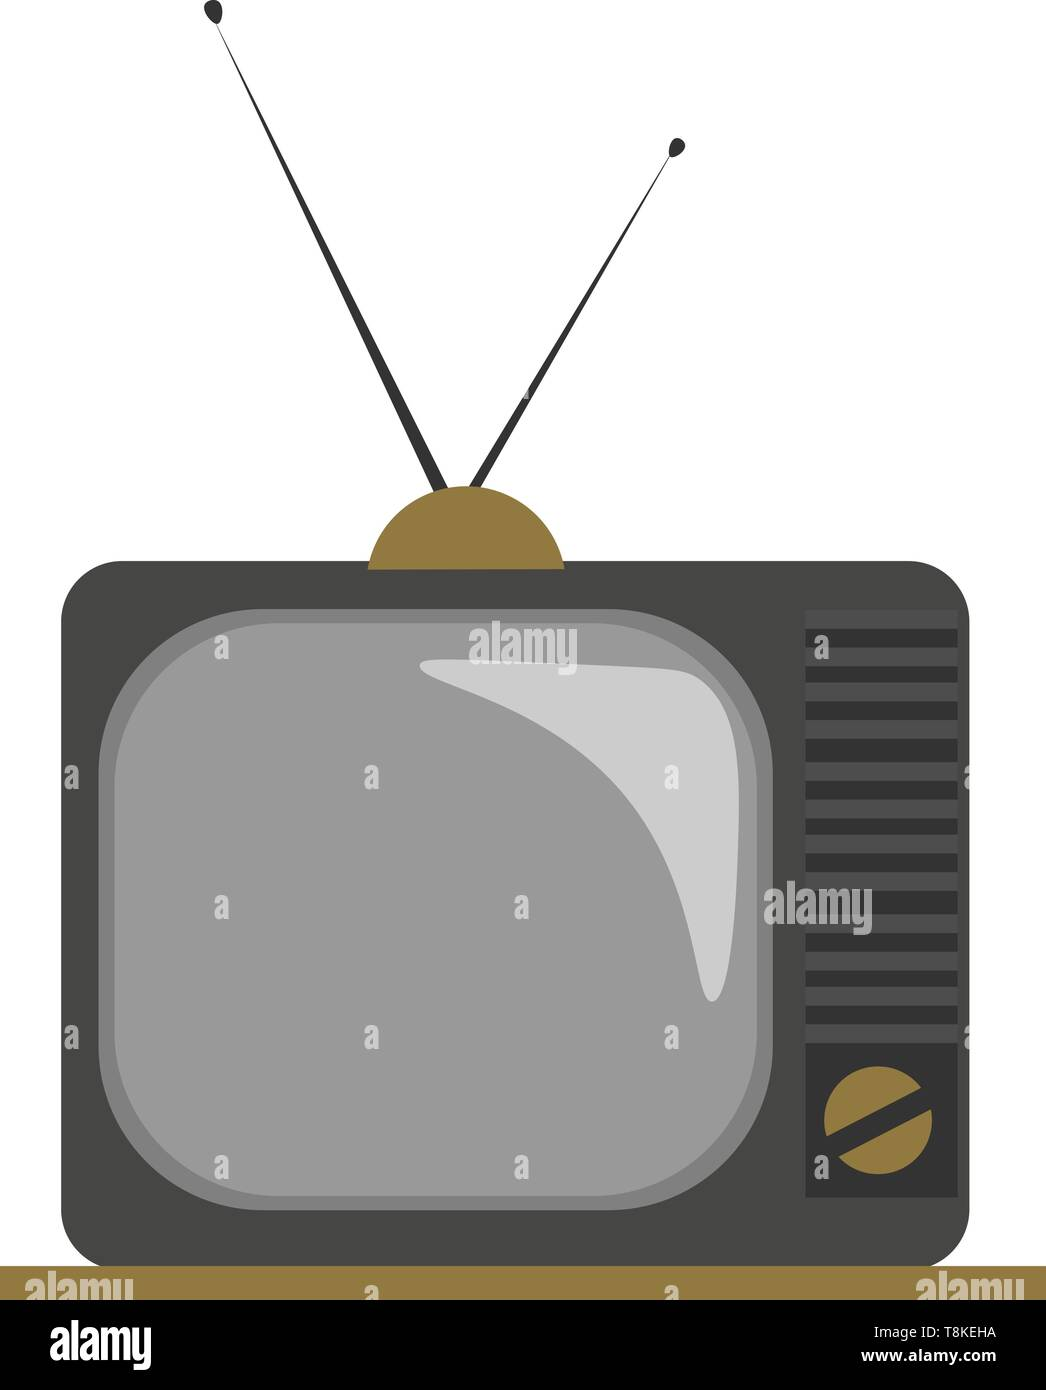 Clipart of an old fashioned TV with two attachable antennas, and a knob on the front to illuminate the scene and adjust the volume of the sound, vecto - Stock Vector